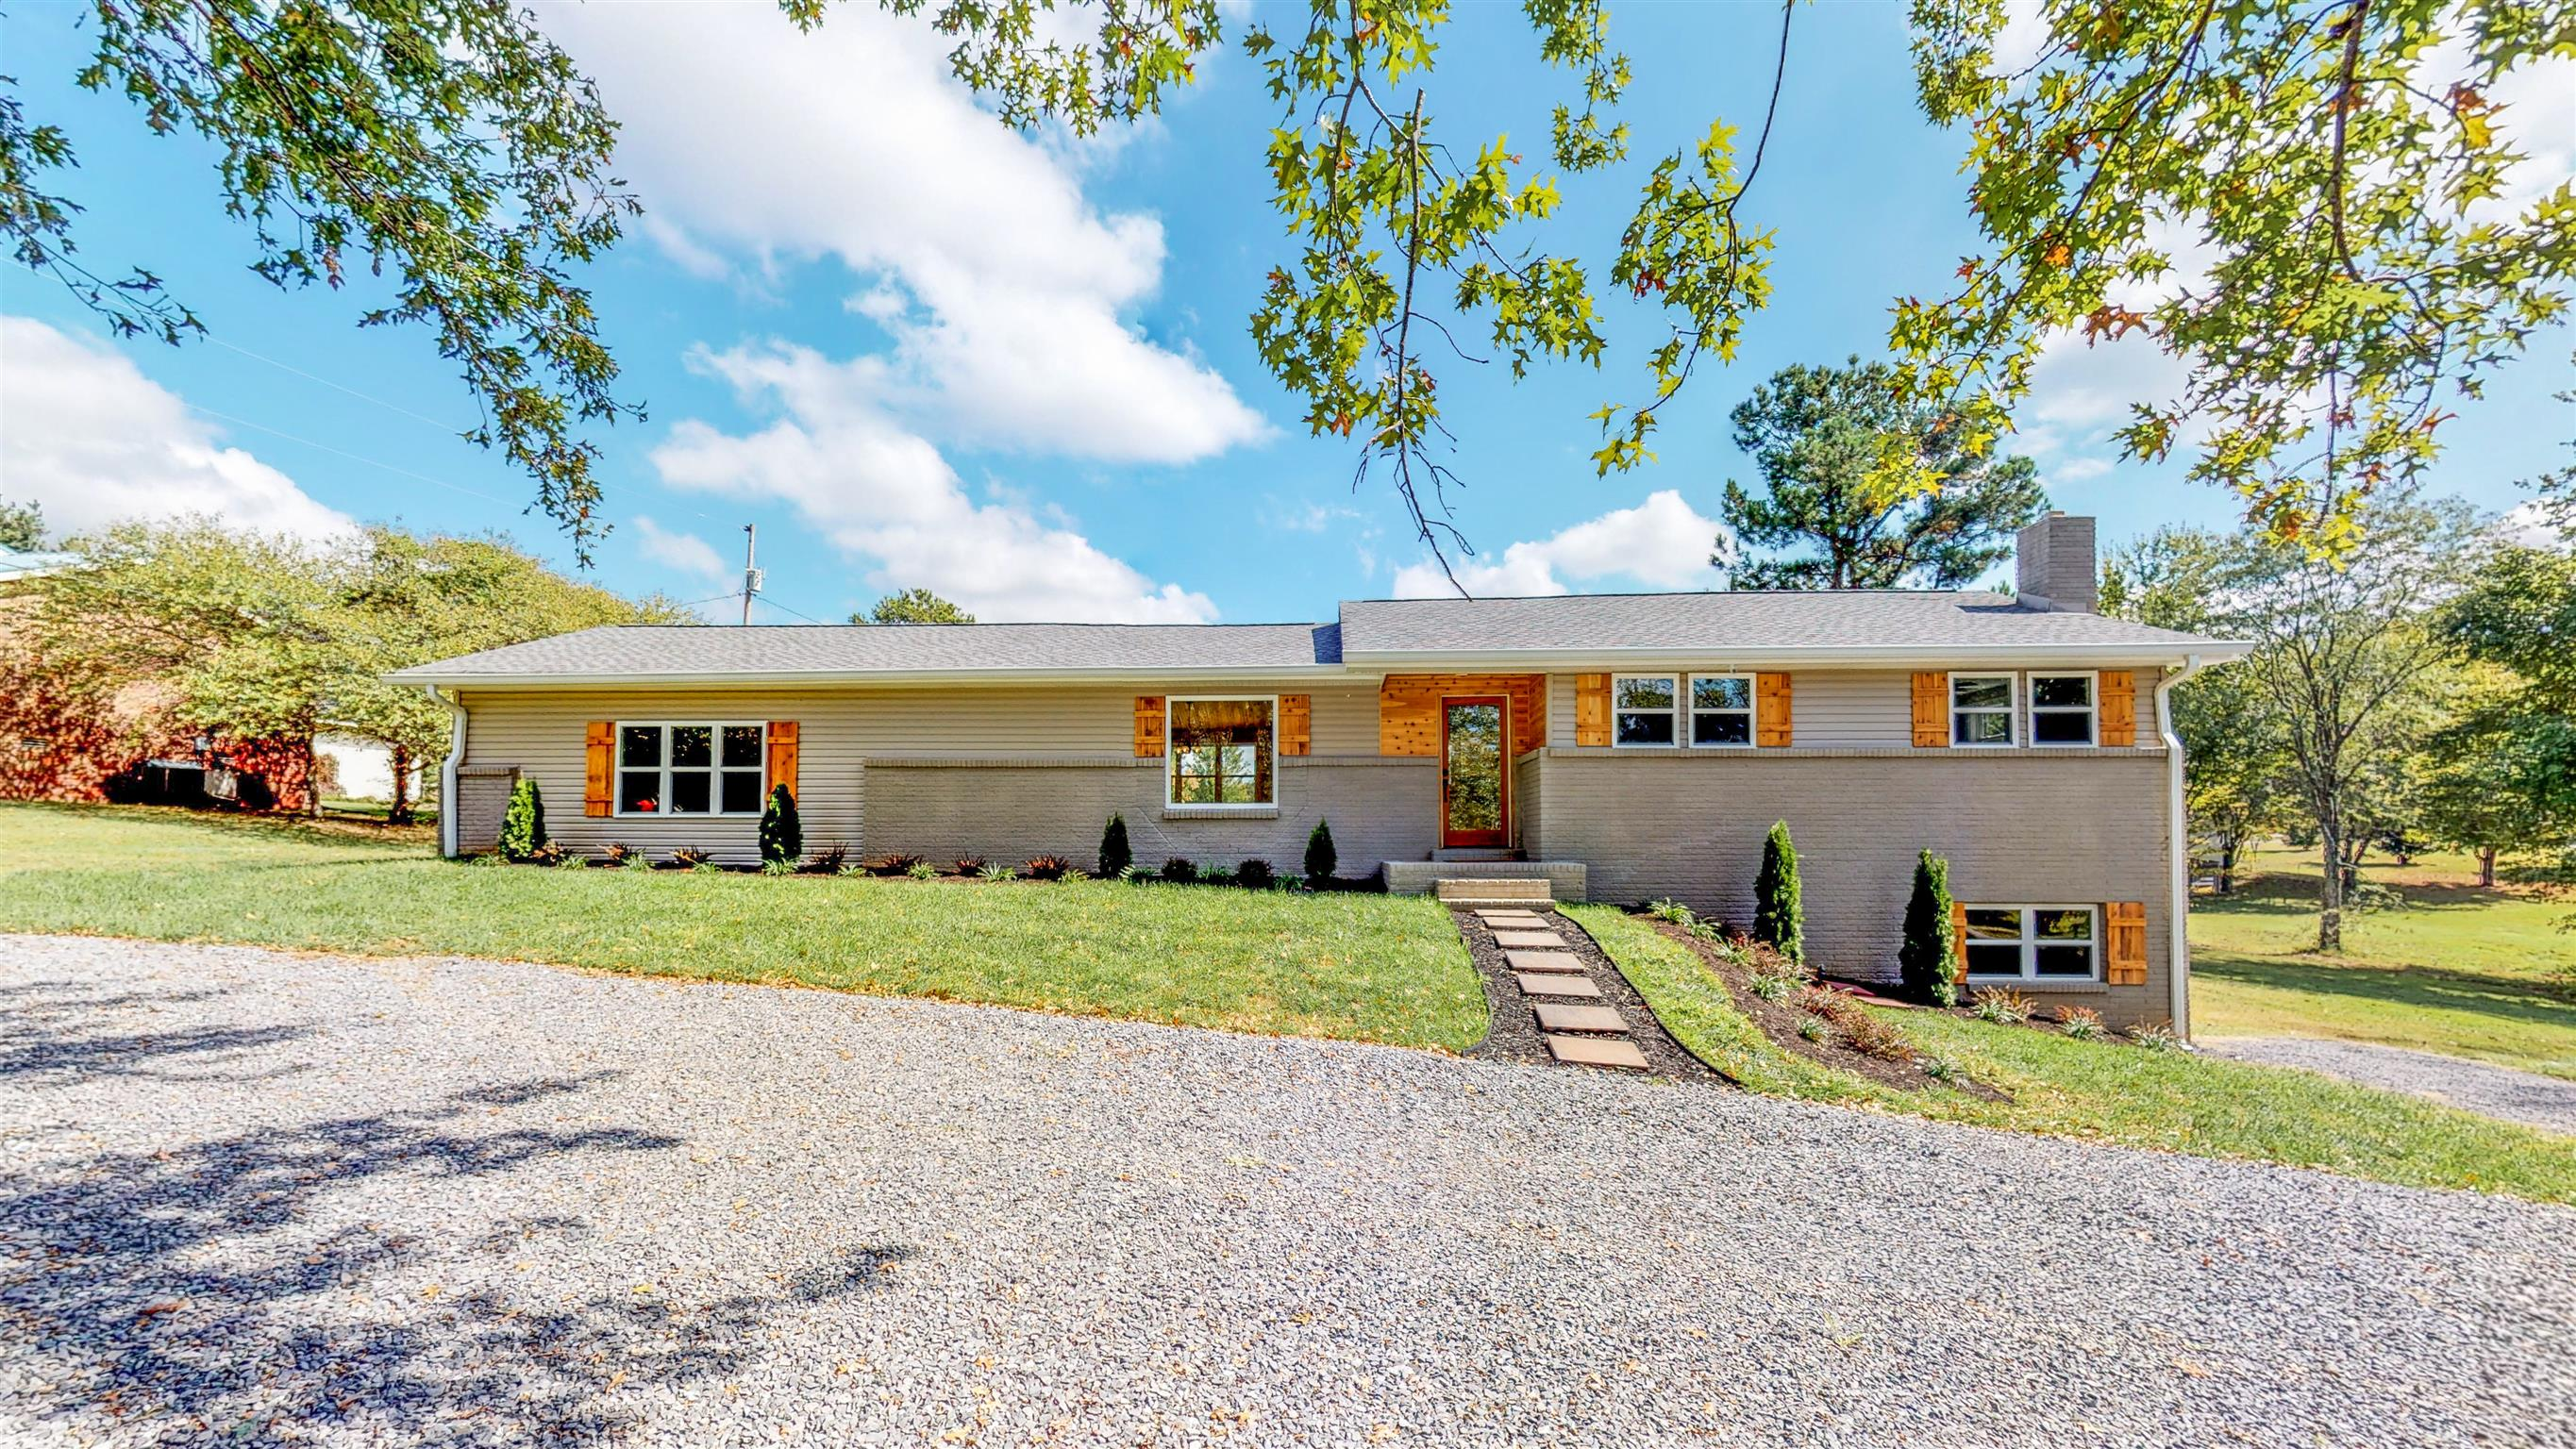 110 Green Acres Rd, Cottontown, TN 37048 - Cottontown, TN real estate listing